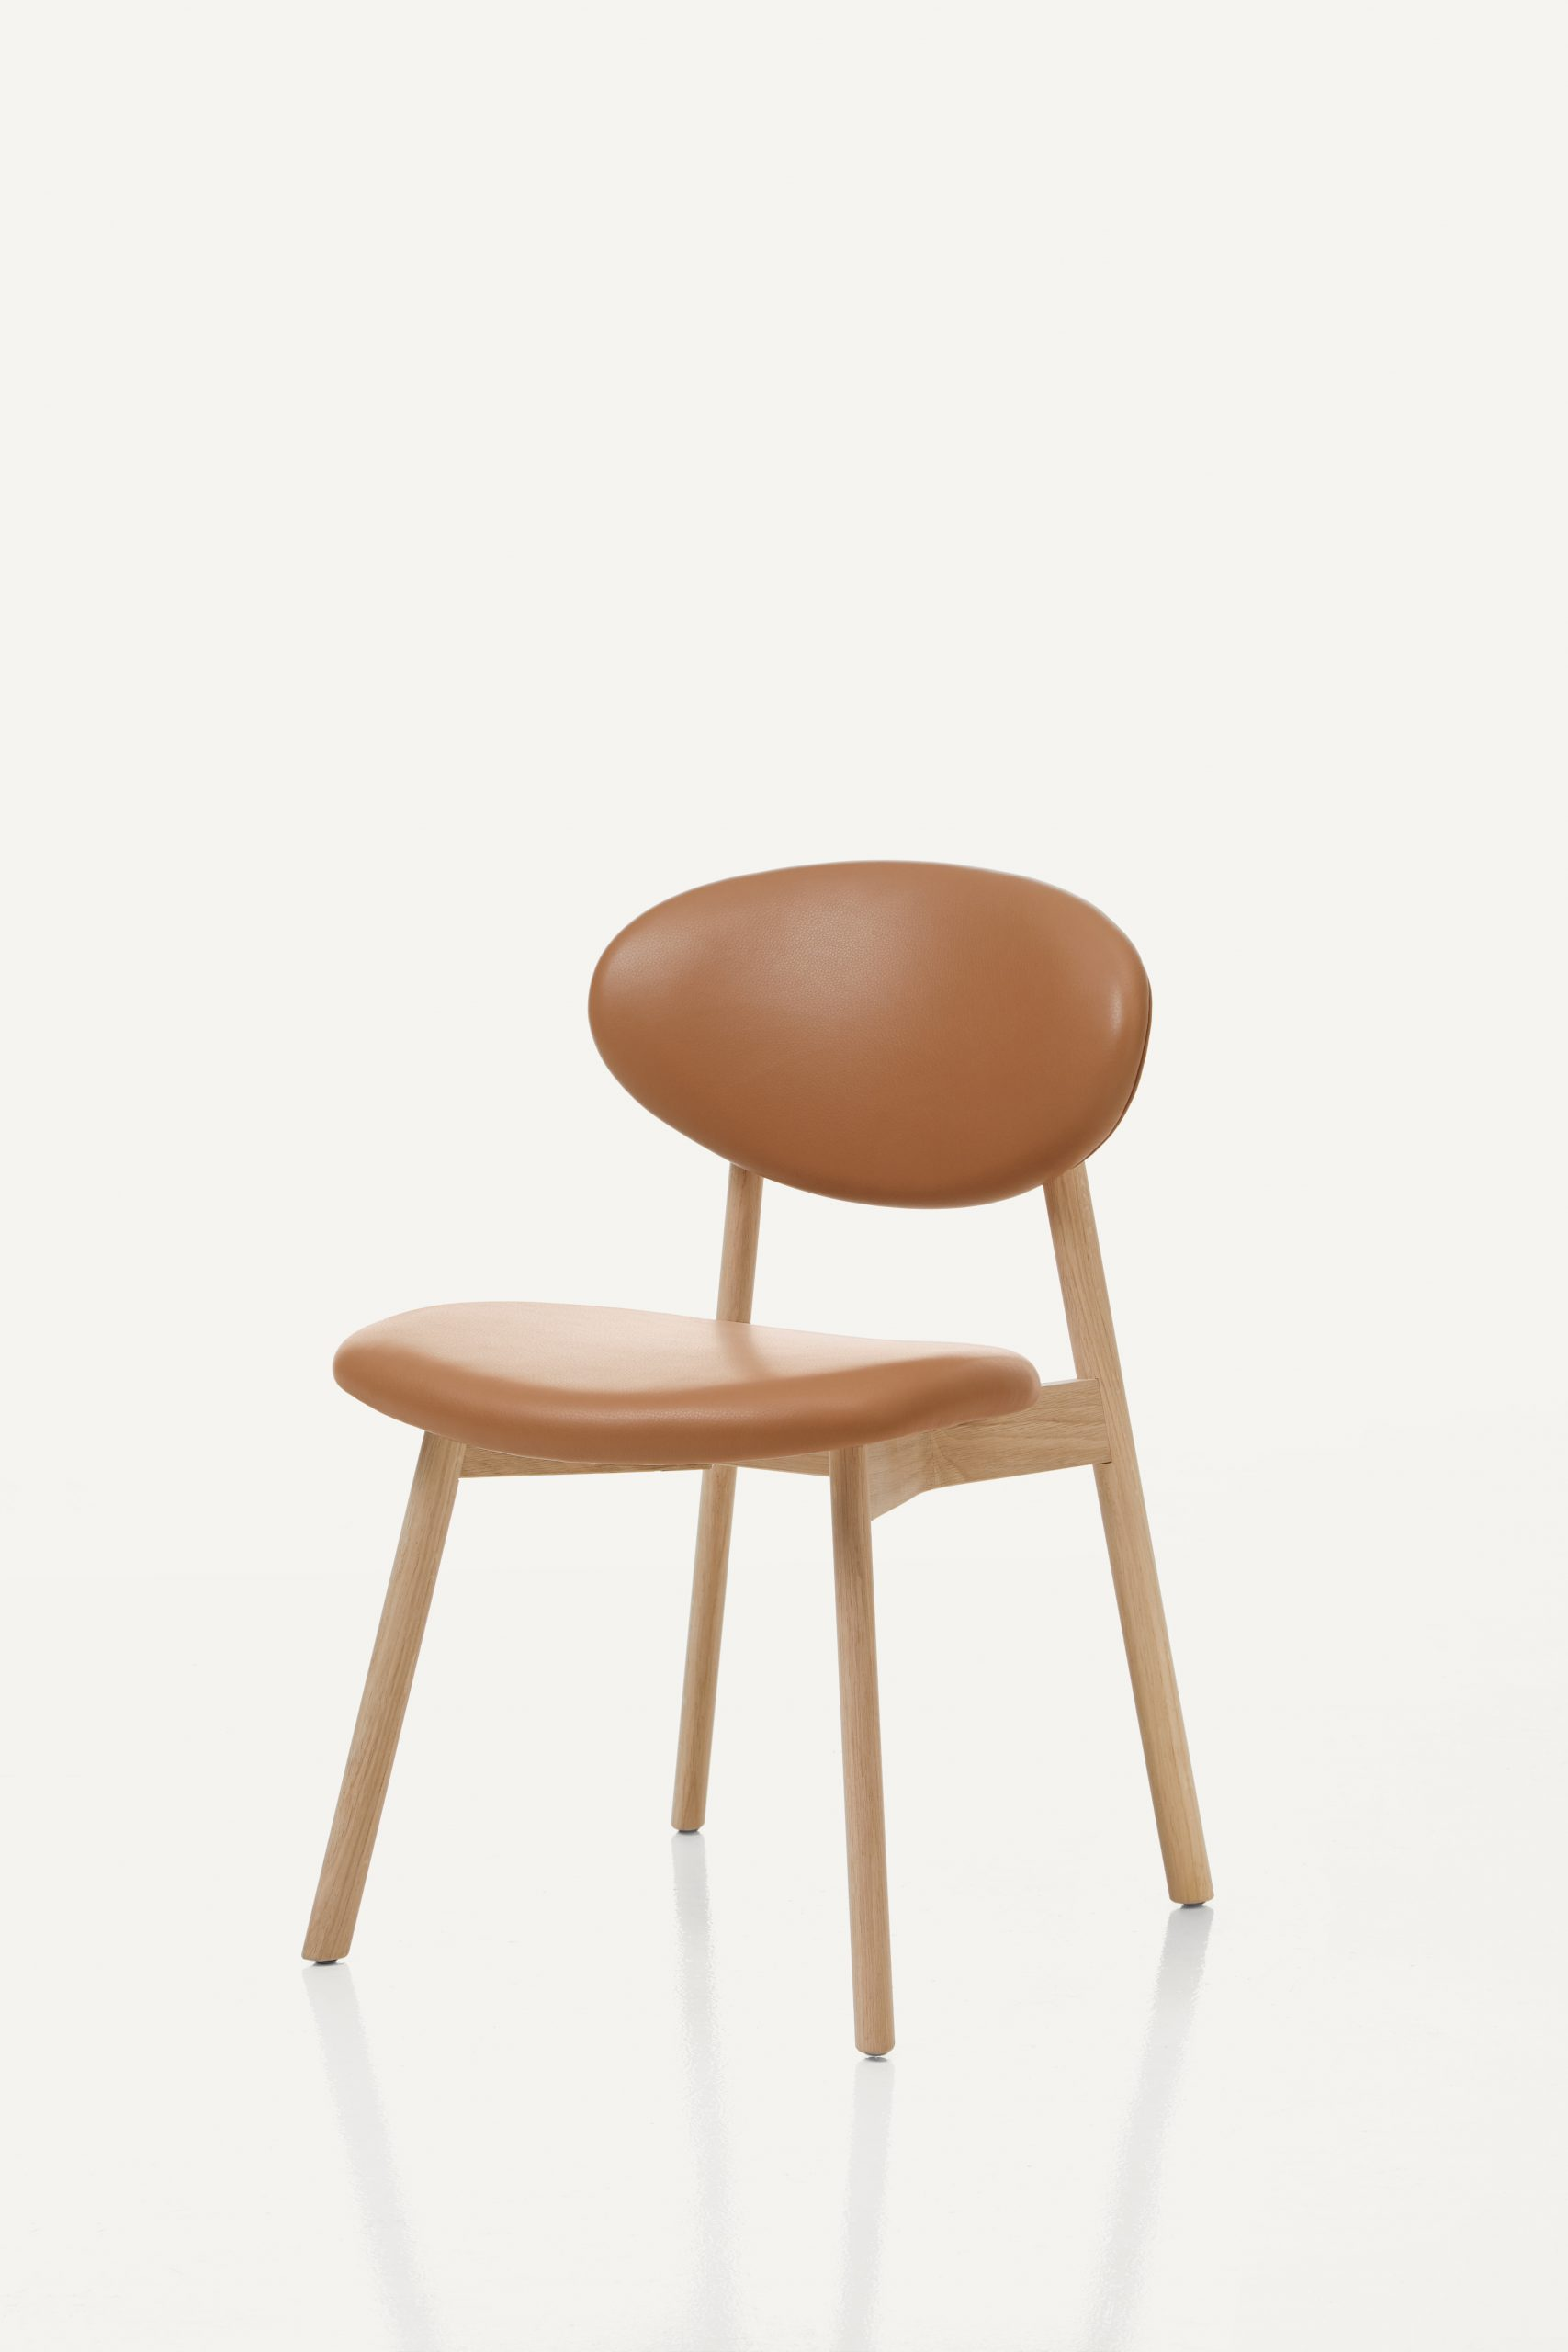 BassamFellows CB-61 Ovoid Chair.with solid Oak frame, 3_4 front, Photography MARCO FAVALI